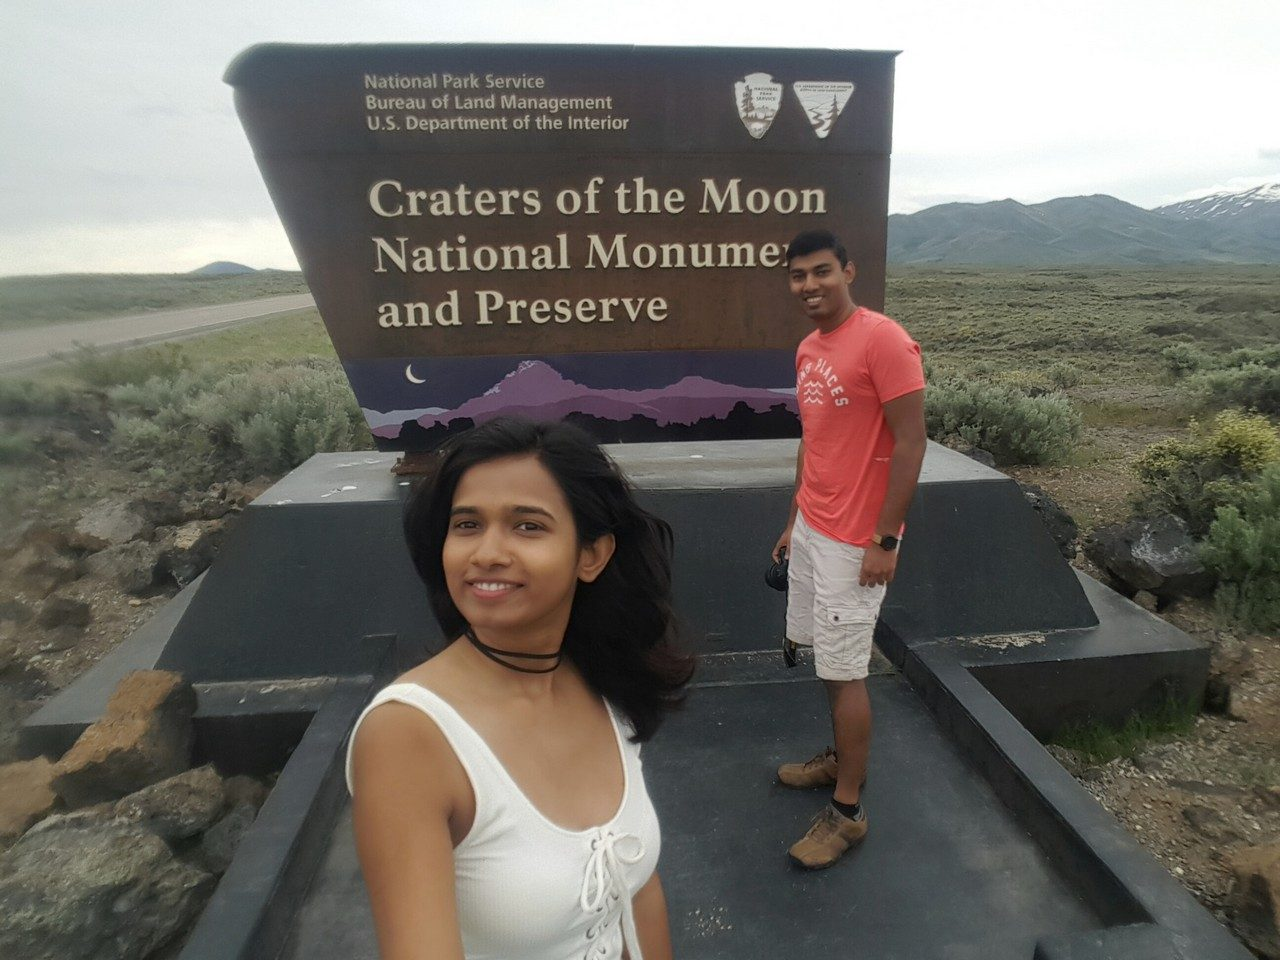 Craters of the moon National monument entrance sign